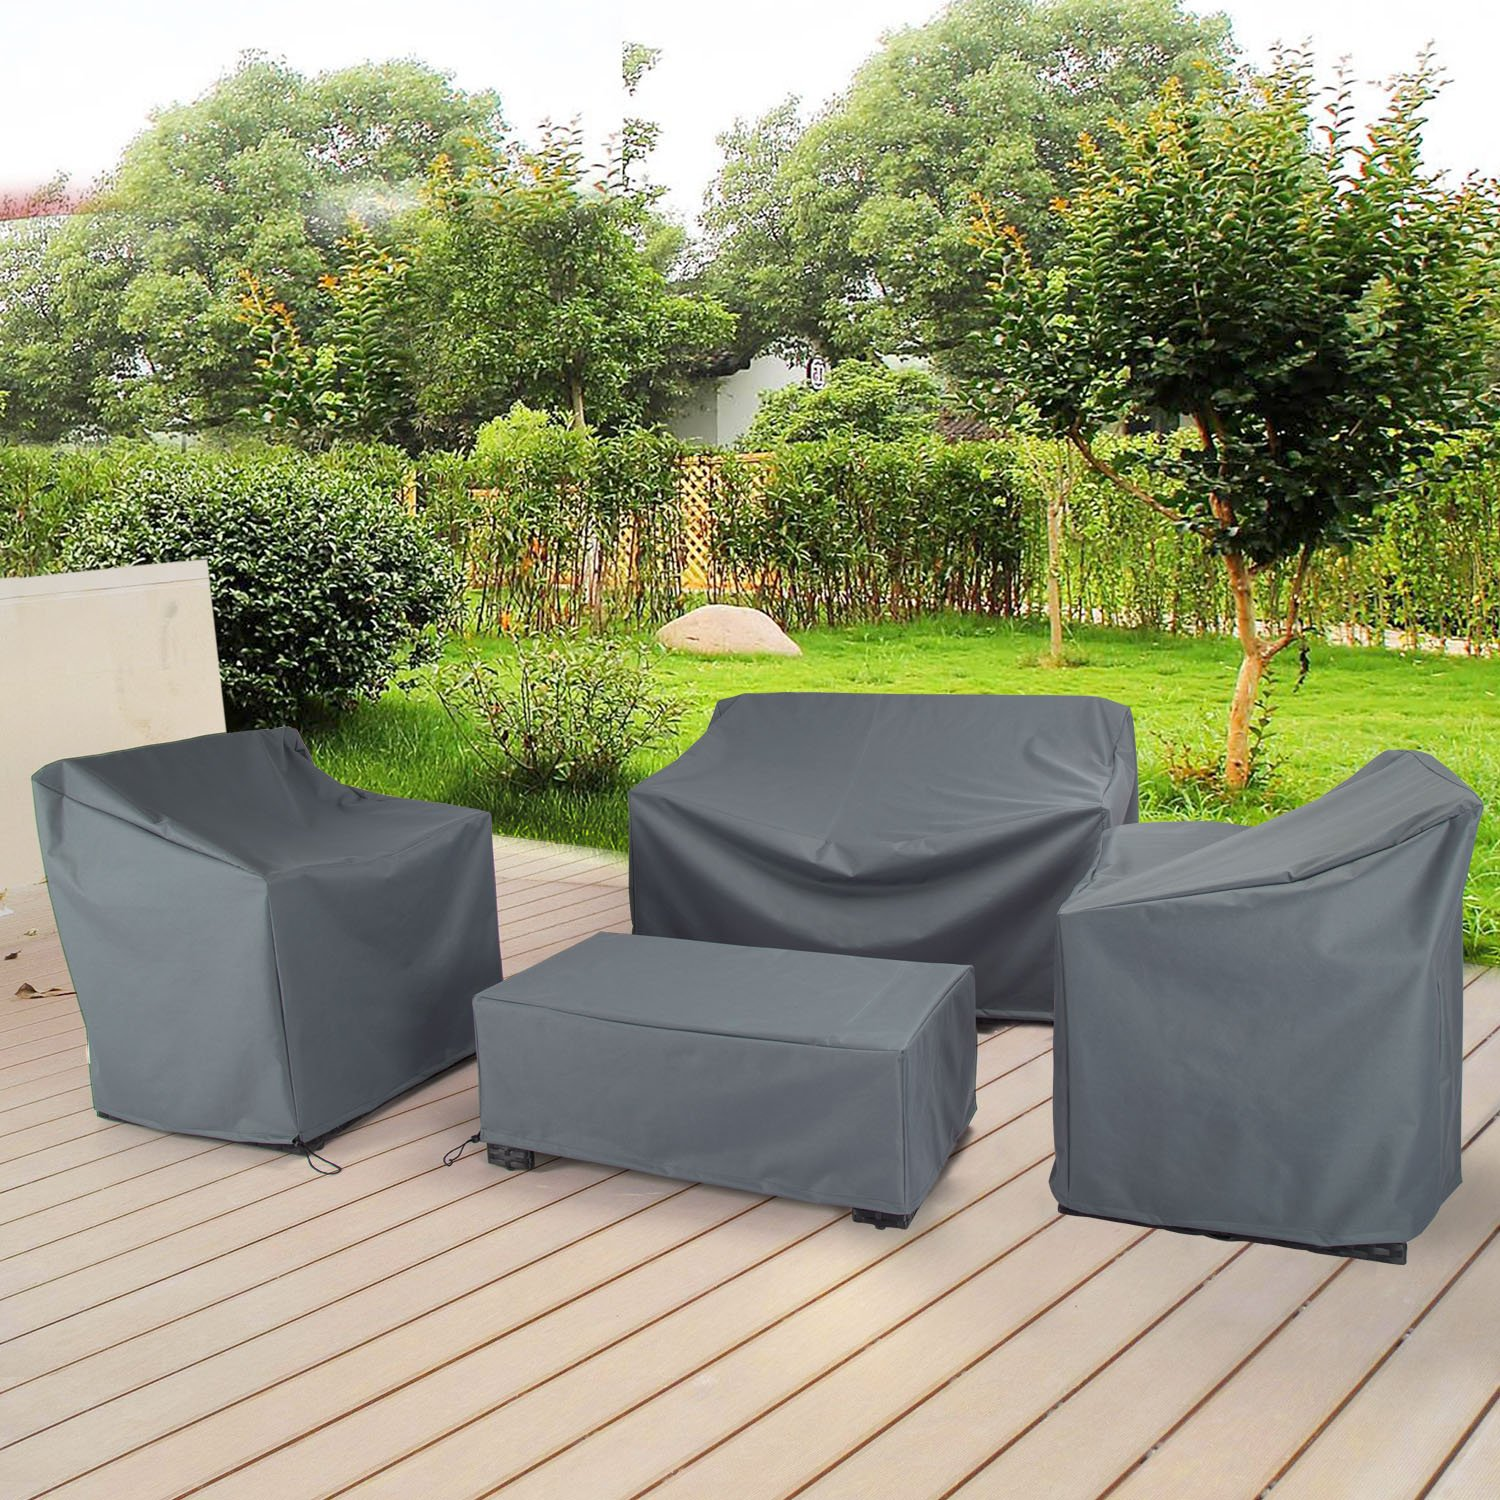 Patio Garden Furniture Cover Set